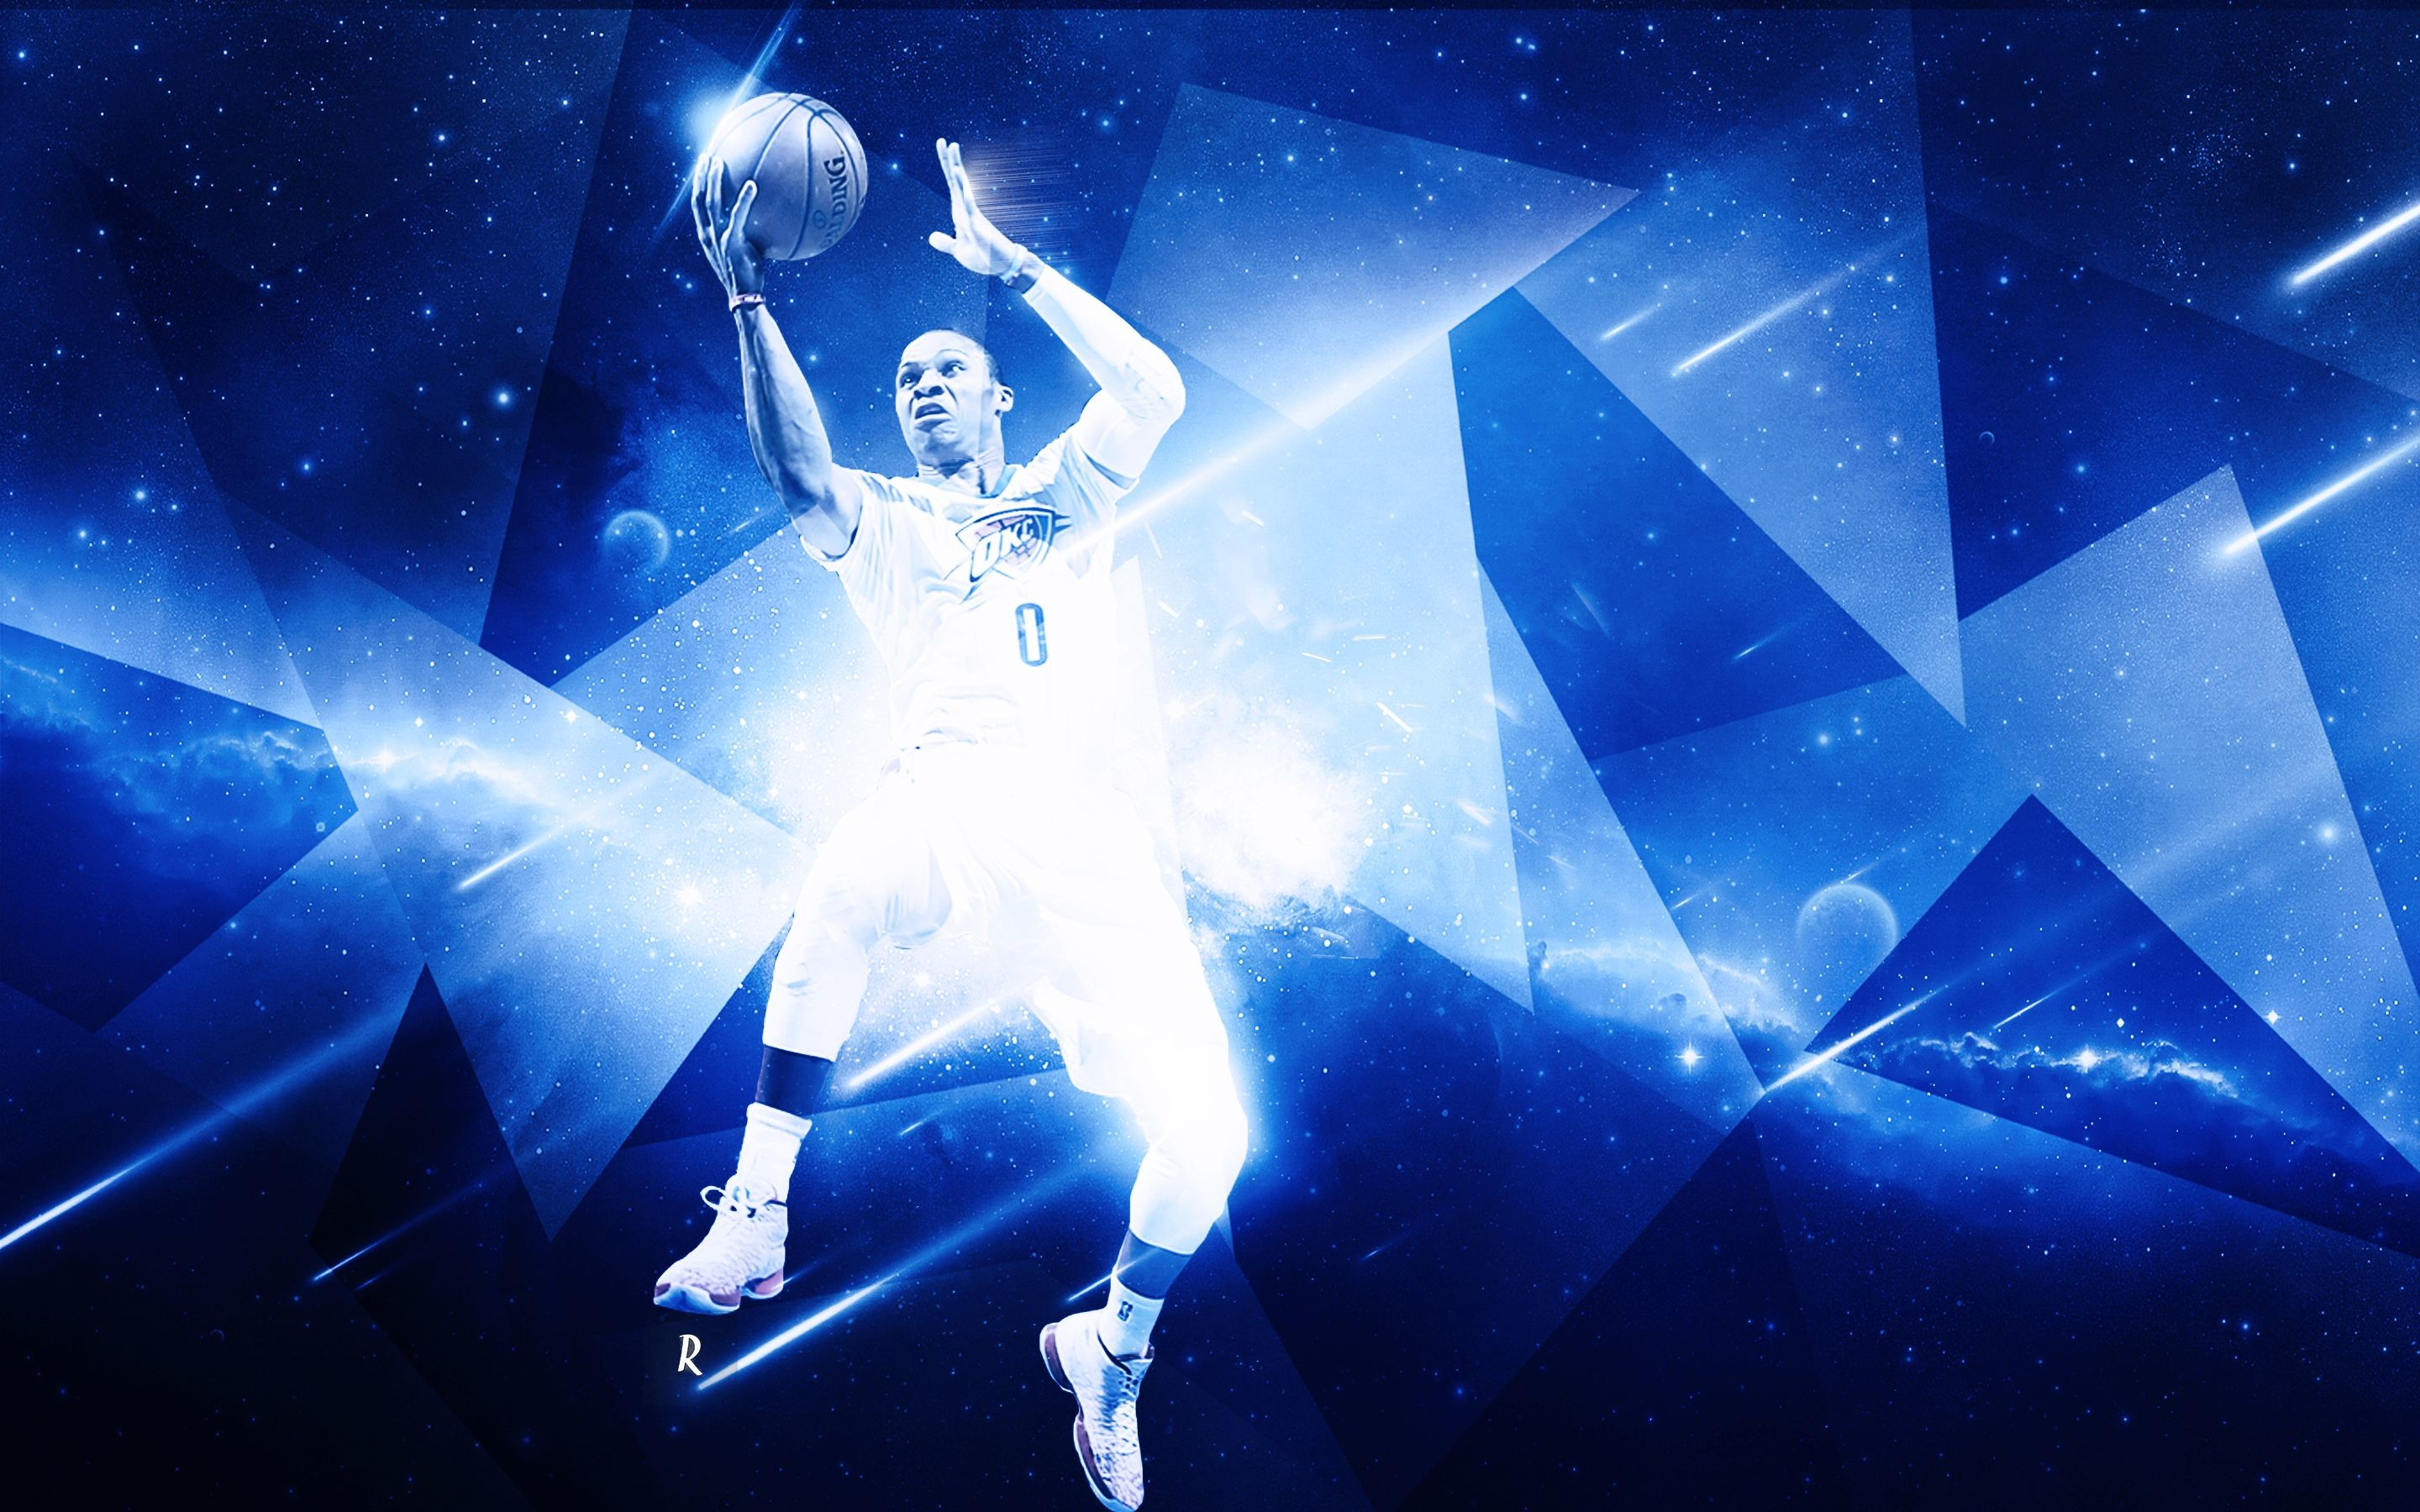 2880x1800 Russell Westbrook Wallpaper by rubanarts on DeviantArt